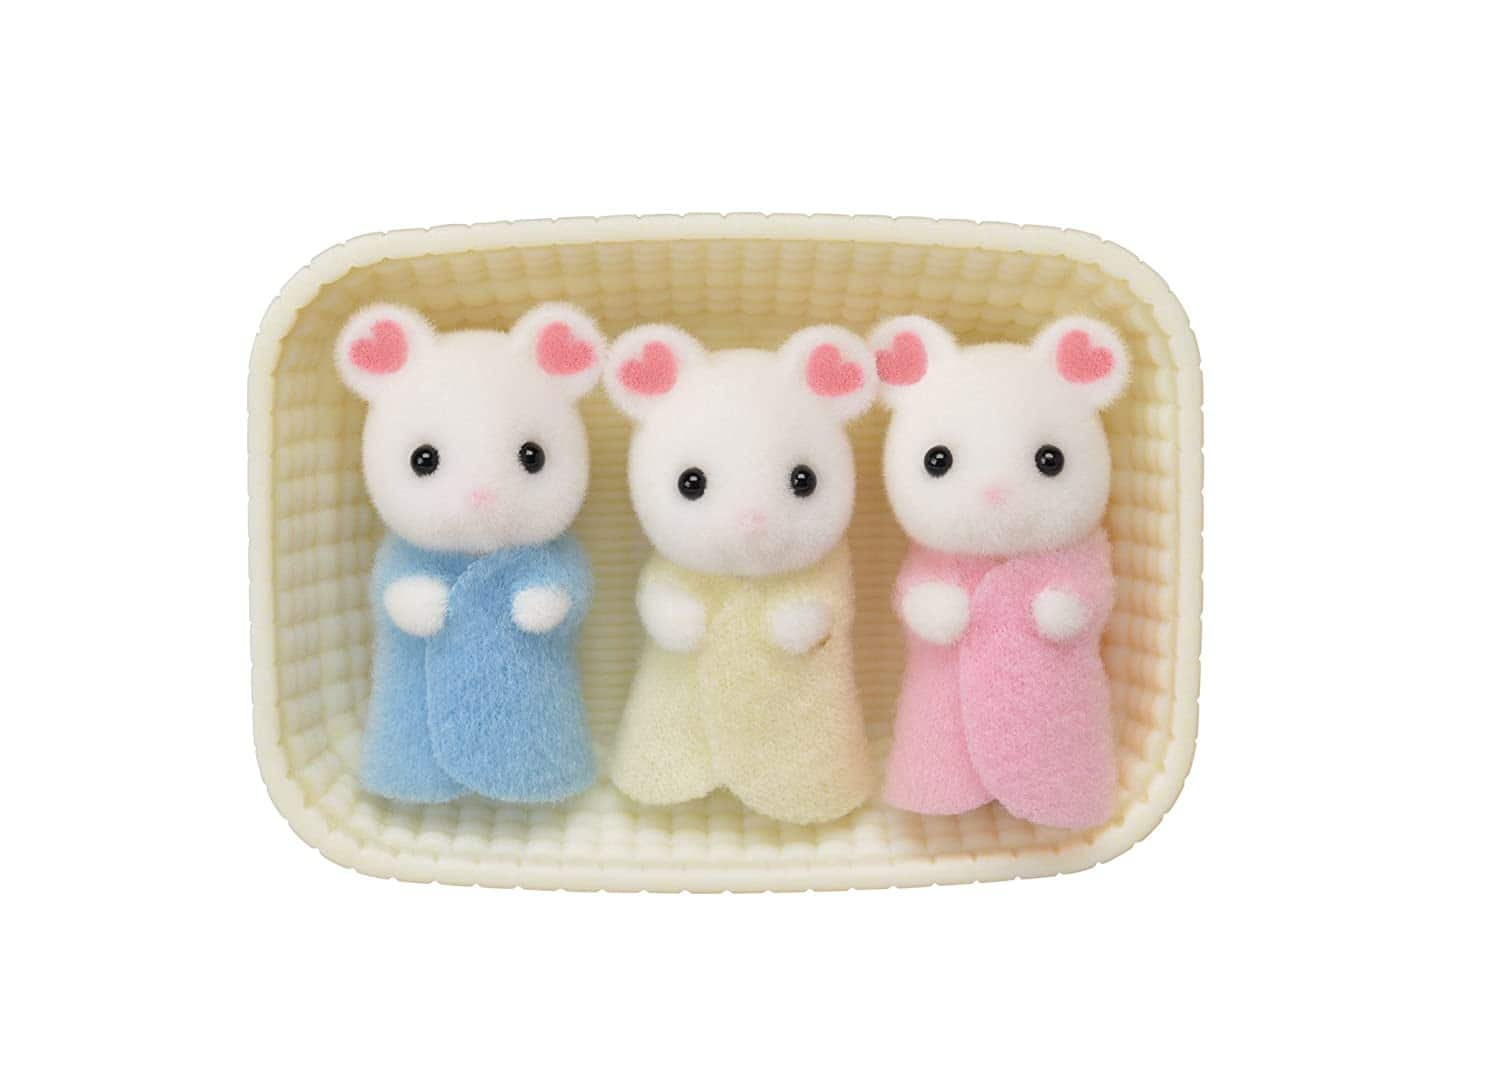 Calico Critters Marshmallow Mouse Triplets $5 + Free Shipping w/ Amazon Prime or Orders $25+